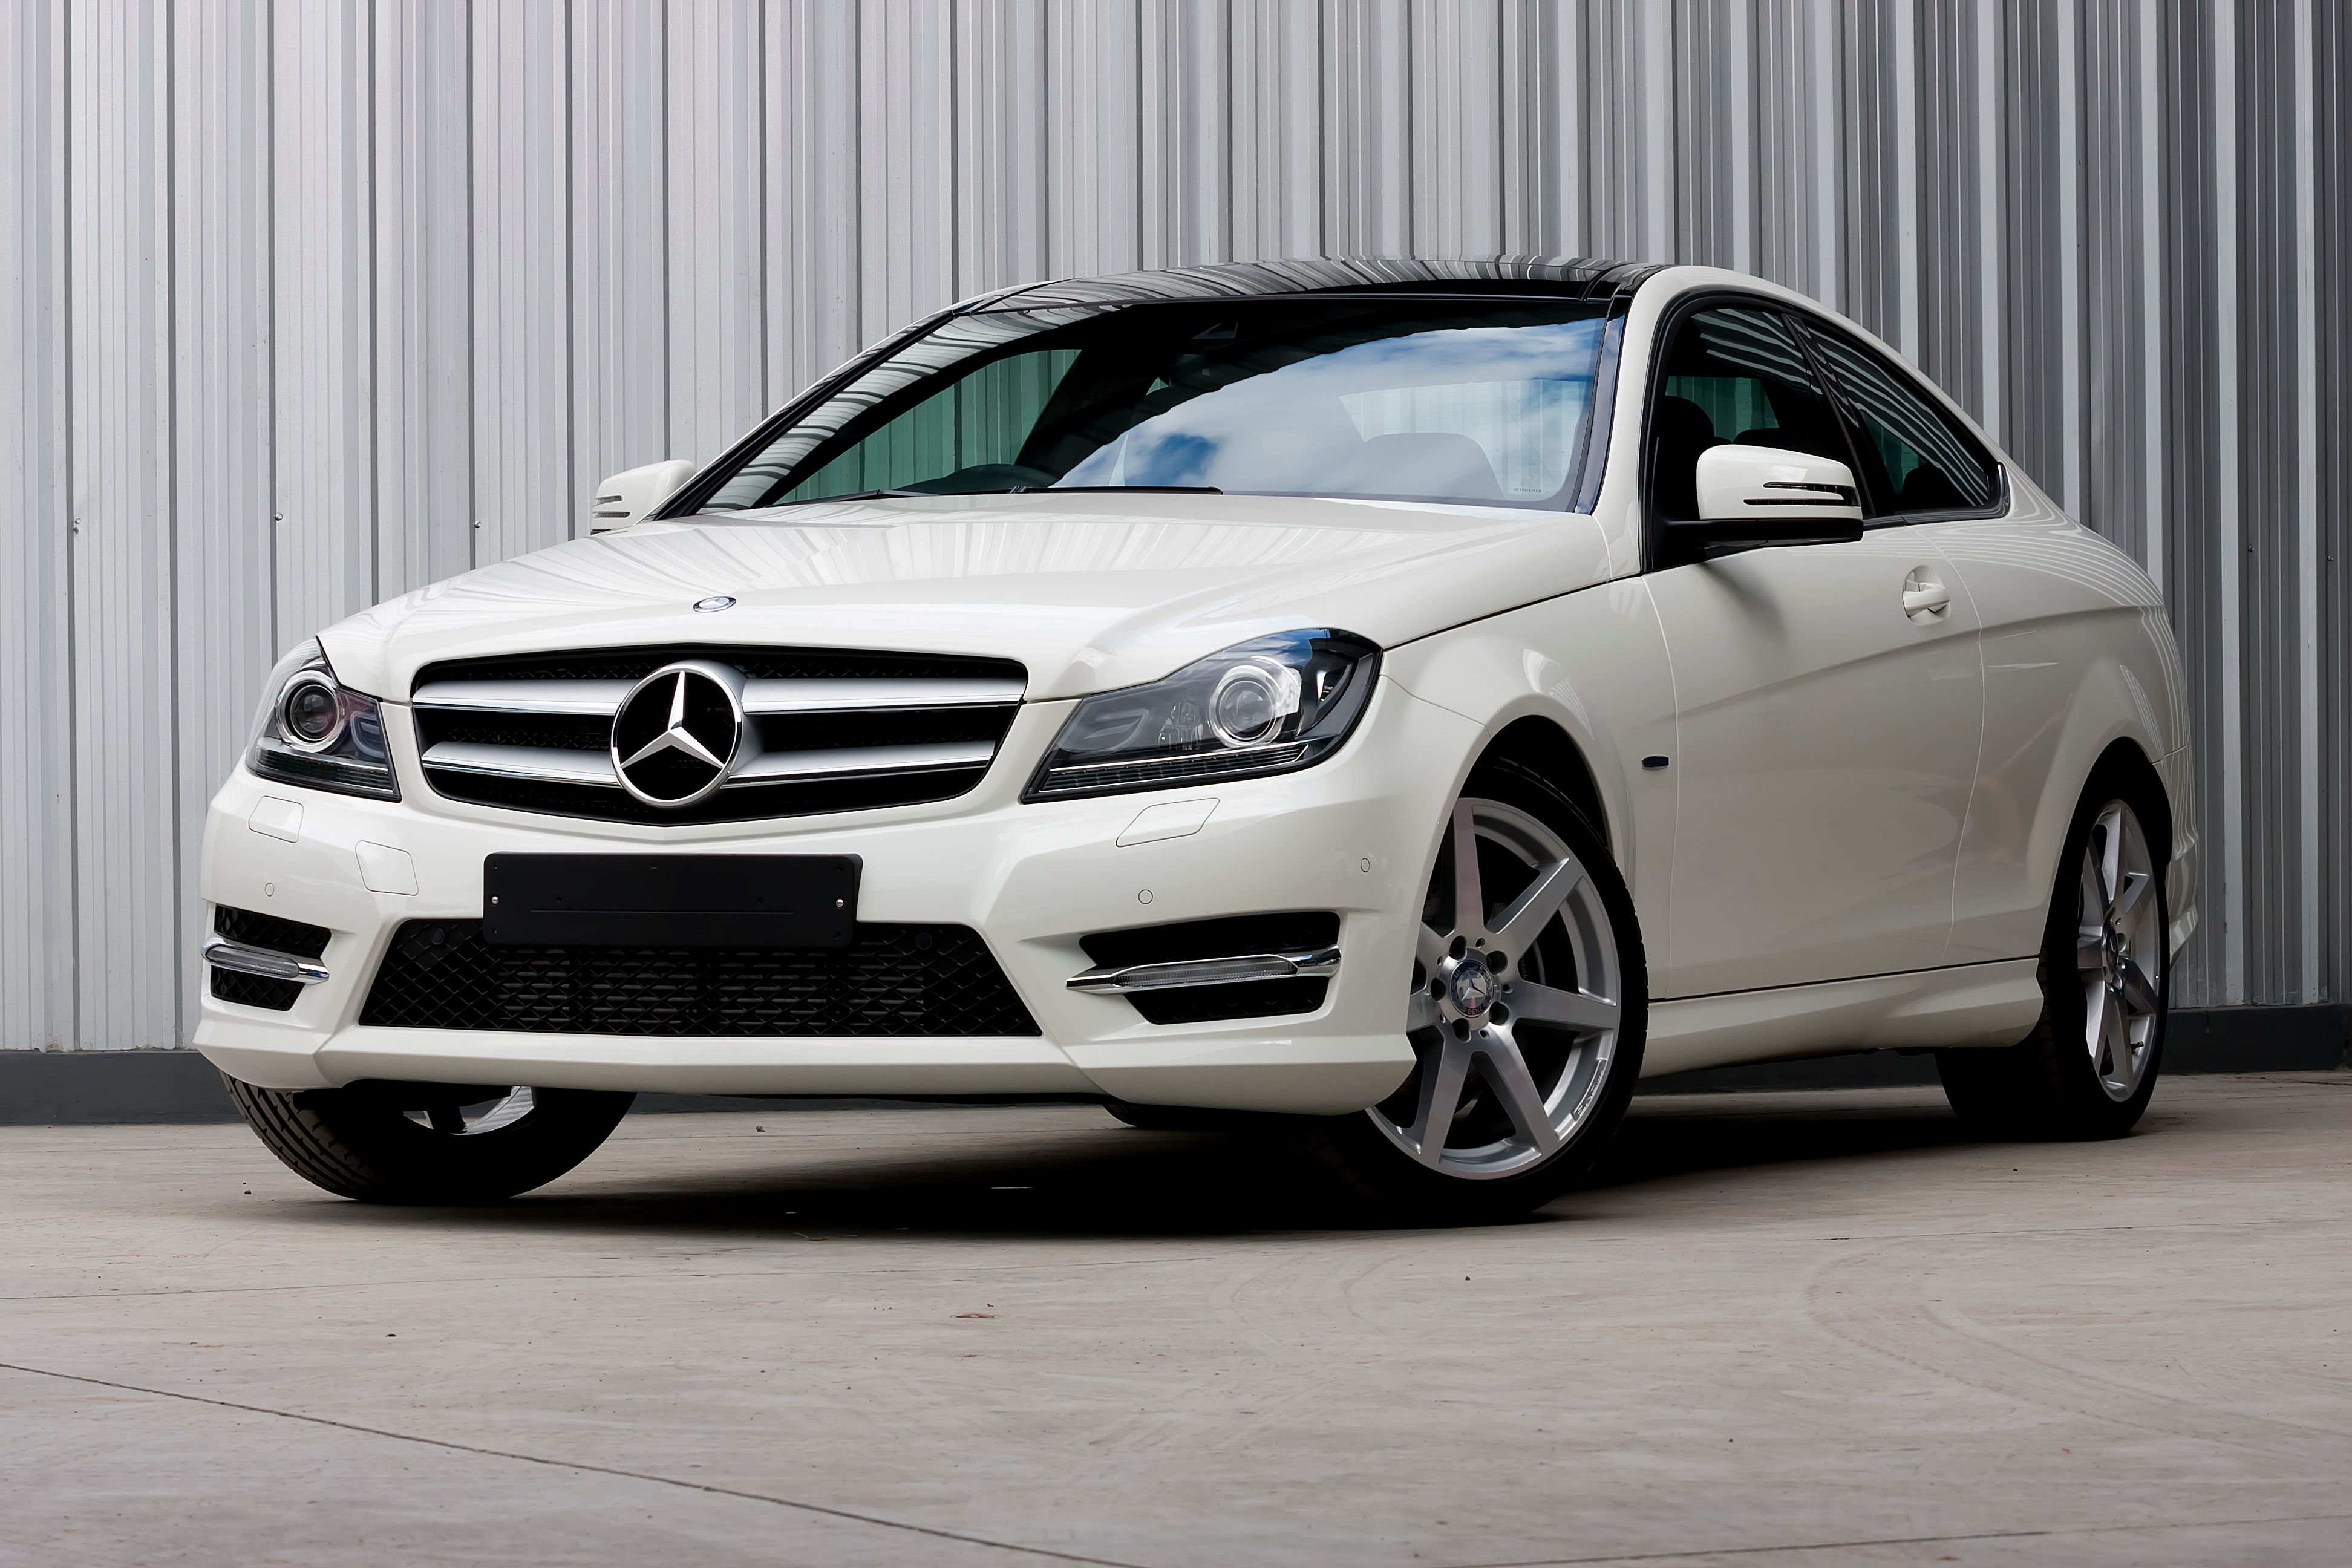 The Mercedes-Benz Collection requires a start-up fee of $495 in addition to the monthly membership fee.